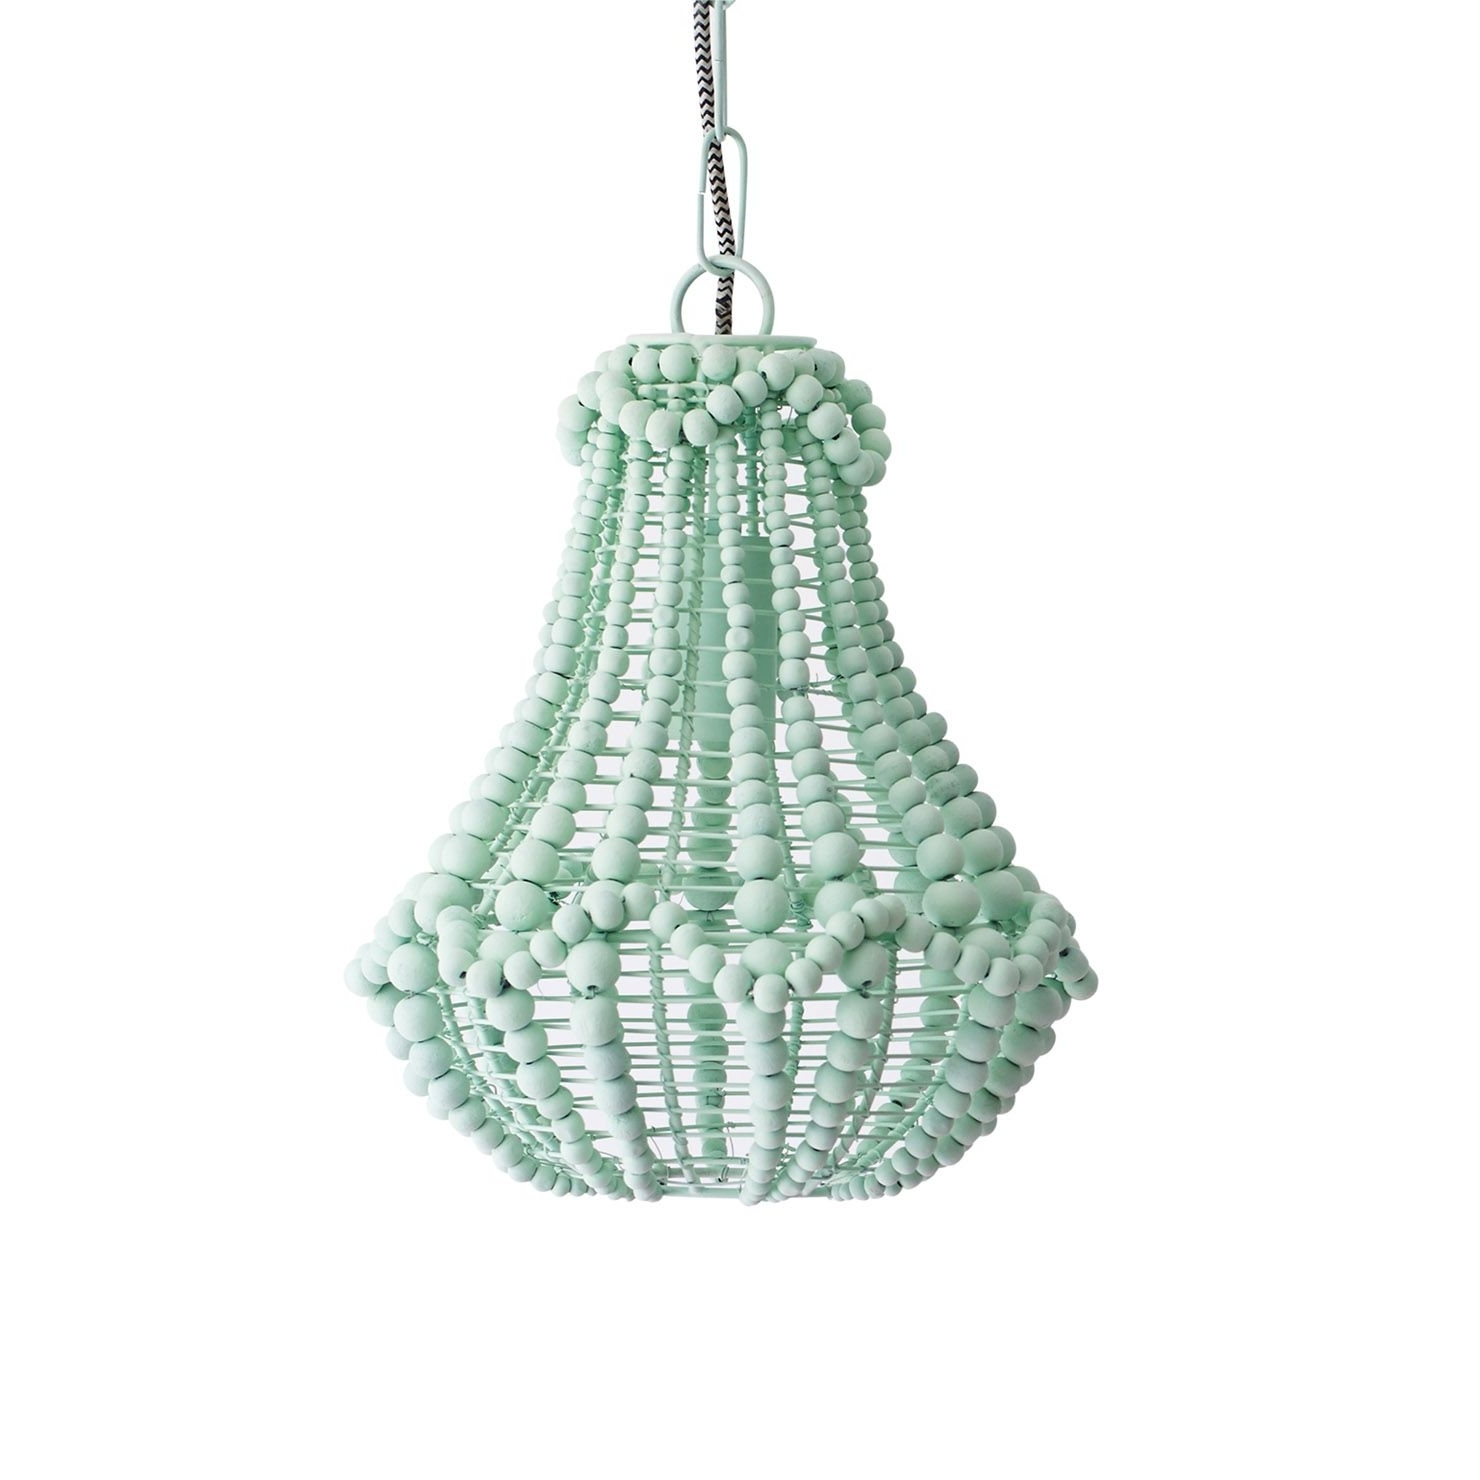 Lighting With Regard To Well Known Turquoise Wood Bead Chandeliers (View 16 of 20)